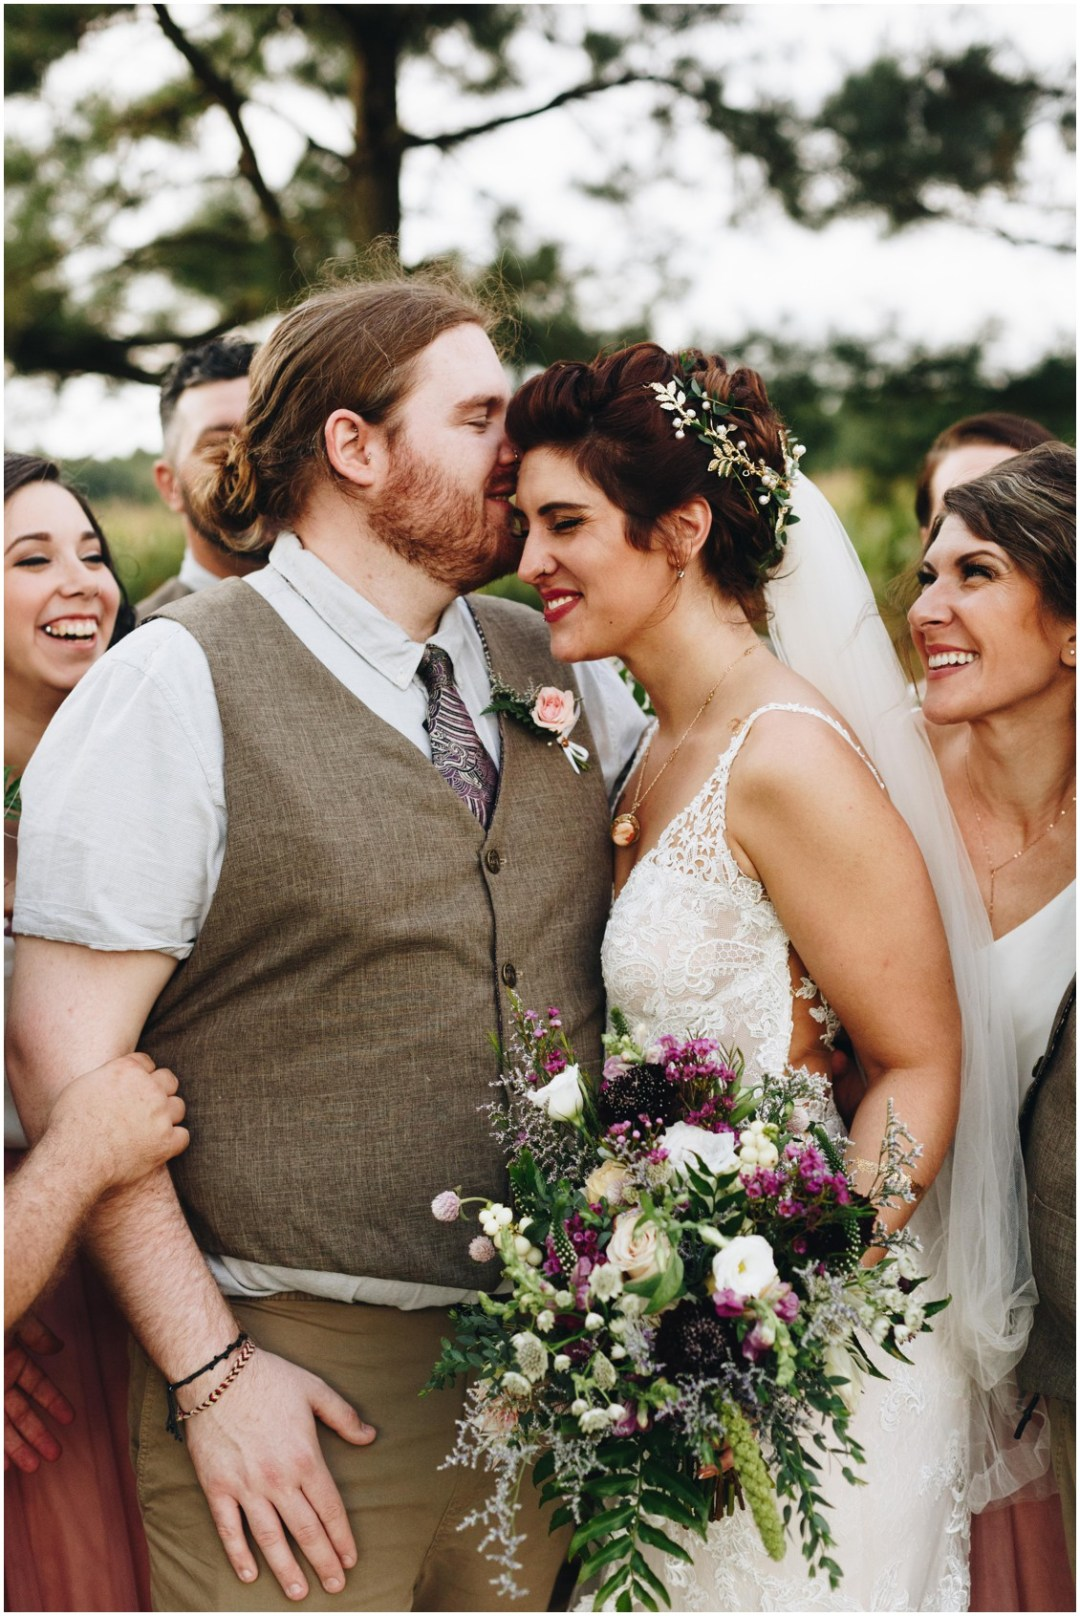 Loose floral bouquet by Keleidoscope Custom Florals + Butterbee Farm and hair by Hair Rehab. |Eastern Shore Wedding|